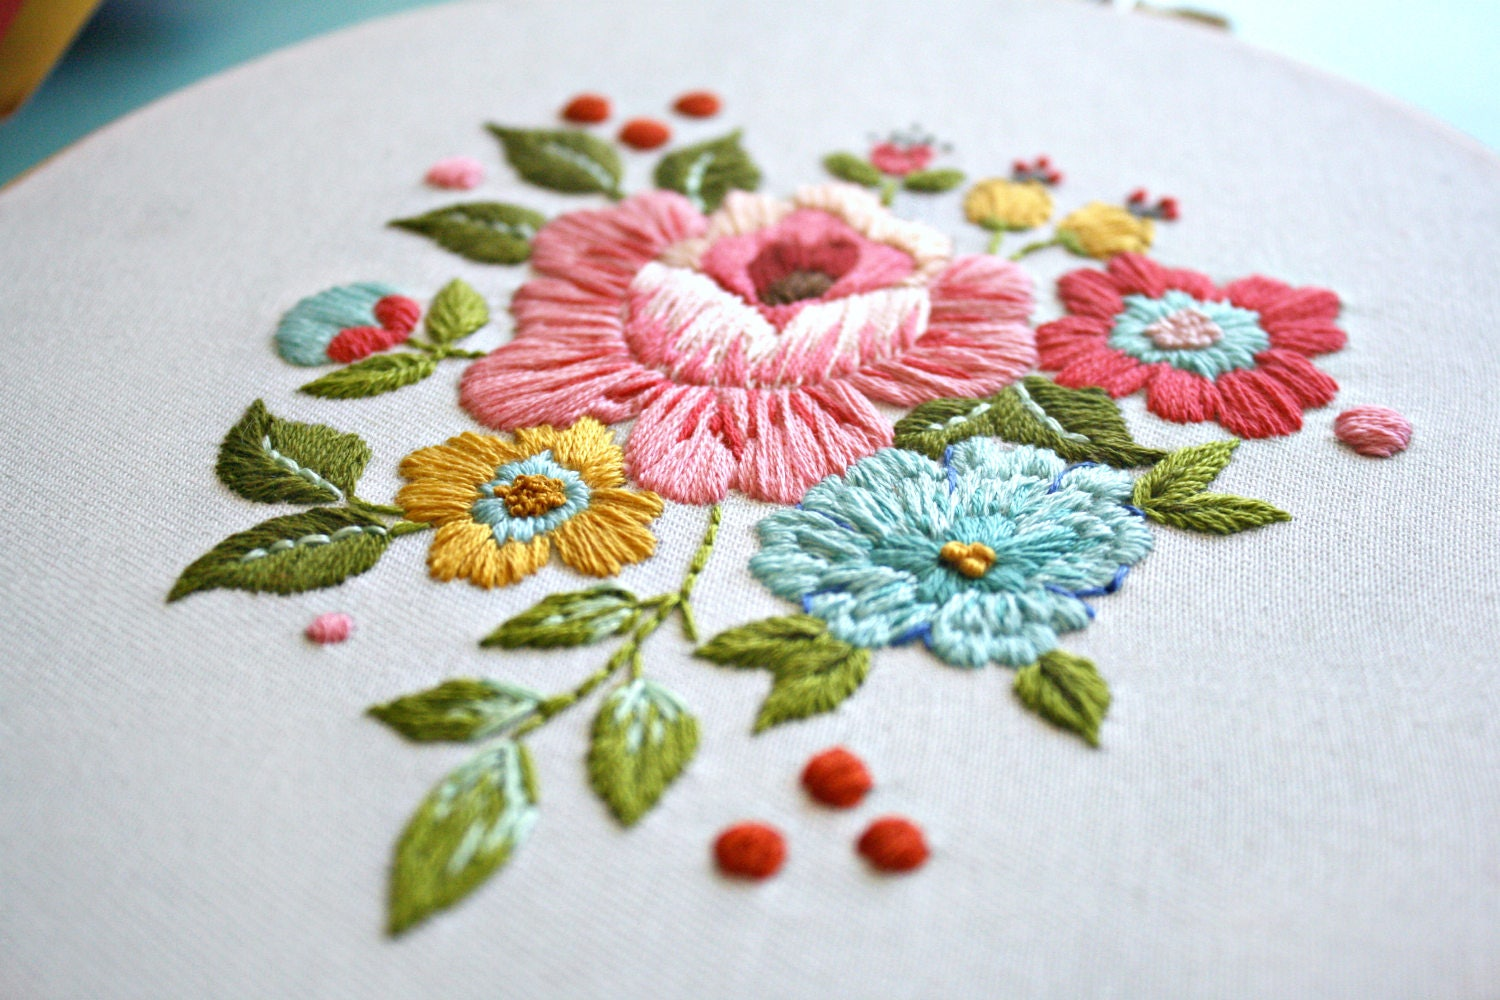 Floral embroidery pattern vintage inspired kit